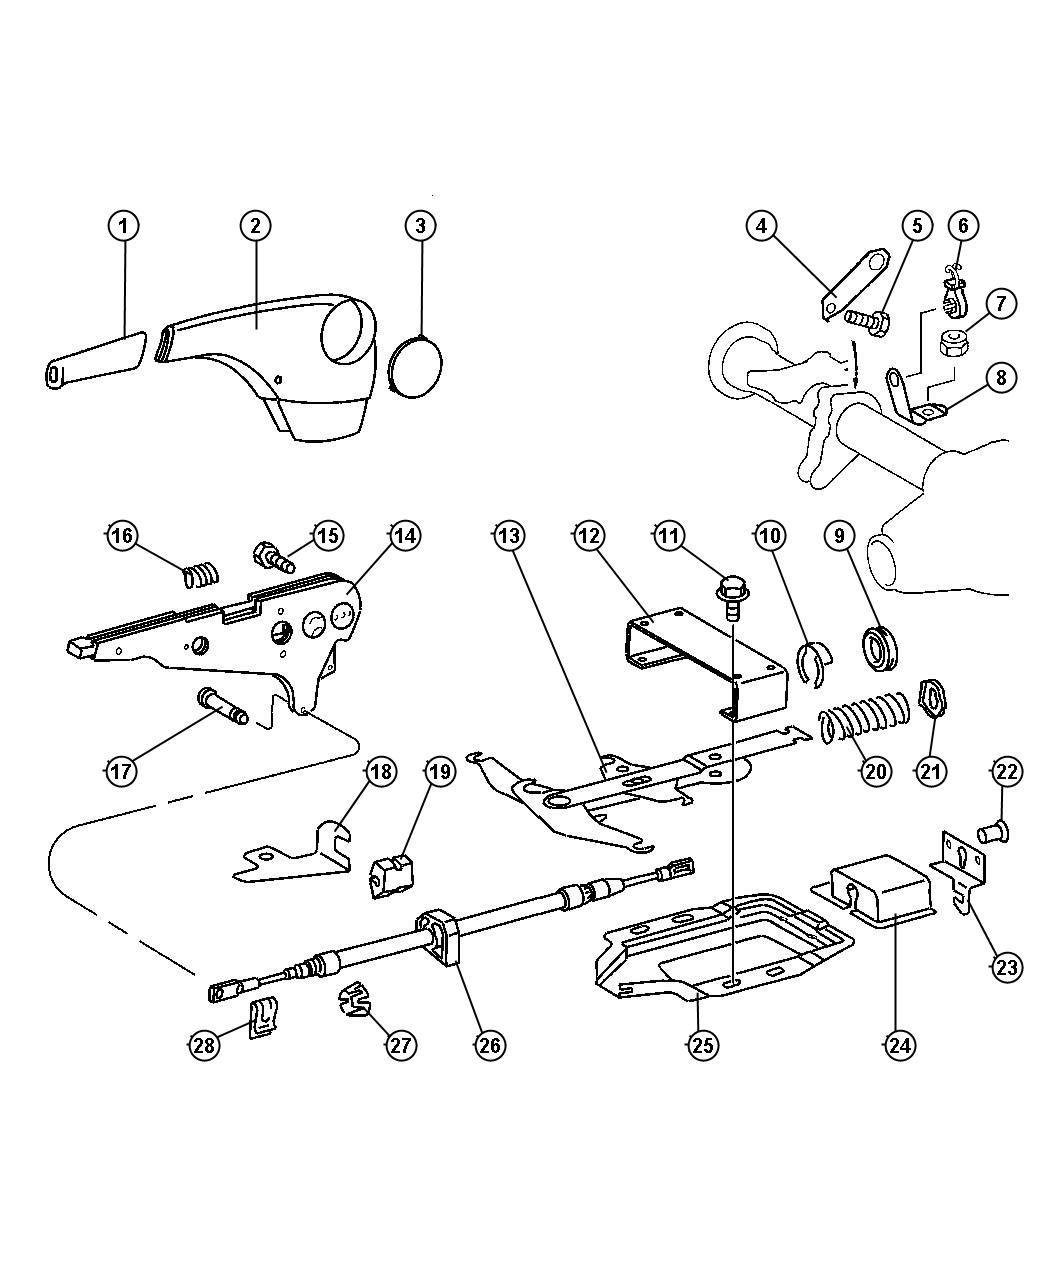 Removing The Parking Brake Handle Sprinter Forum Diagram To Replace And Cover Of But Cant Determine How Actually Remove Exiting Part 1 In Attached Schematic